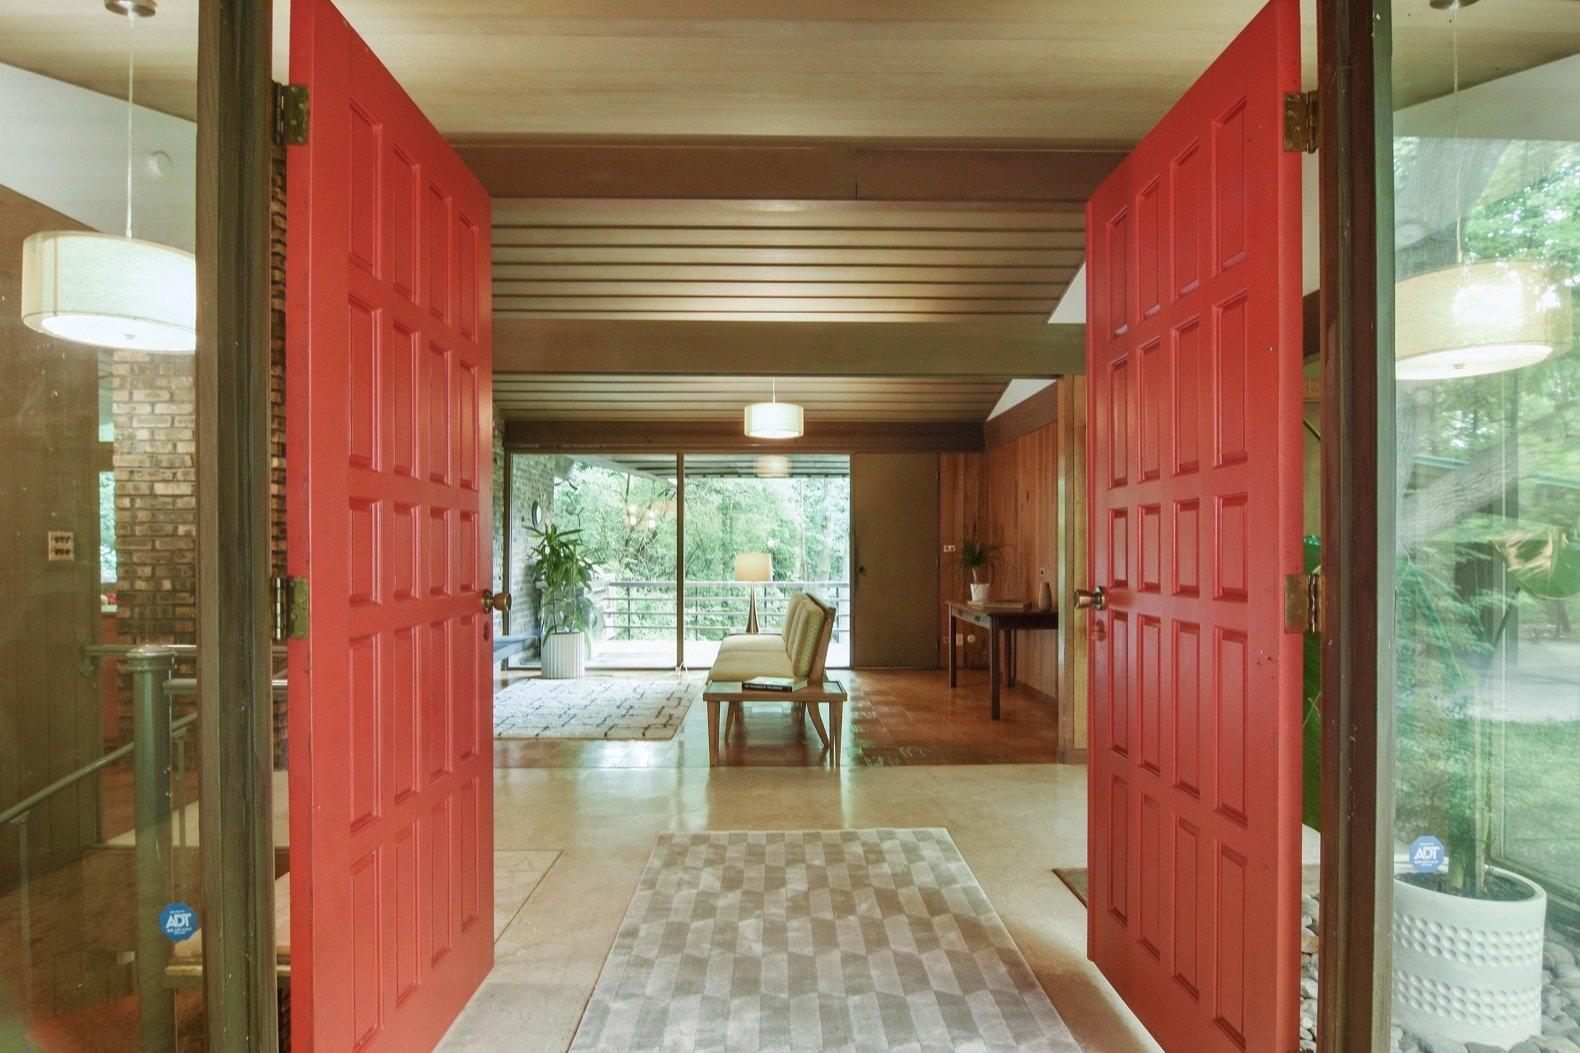 Photo 2 Of 18 In A Frank Lloyd Wright Inspired Home Near Chicago